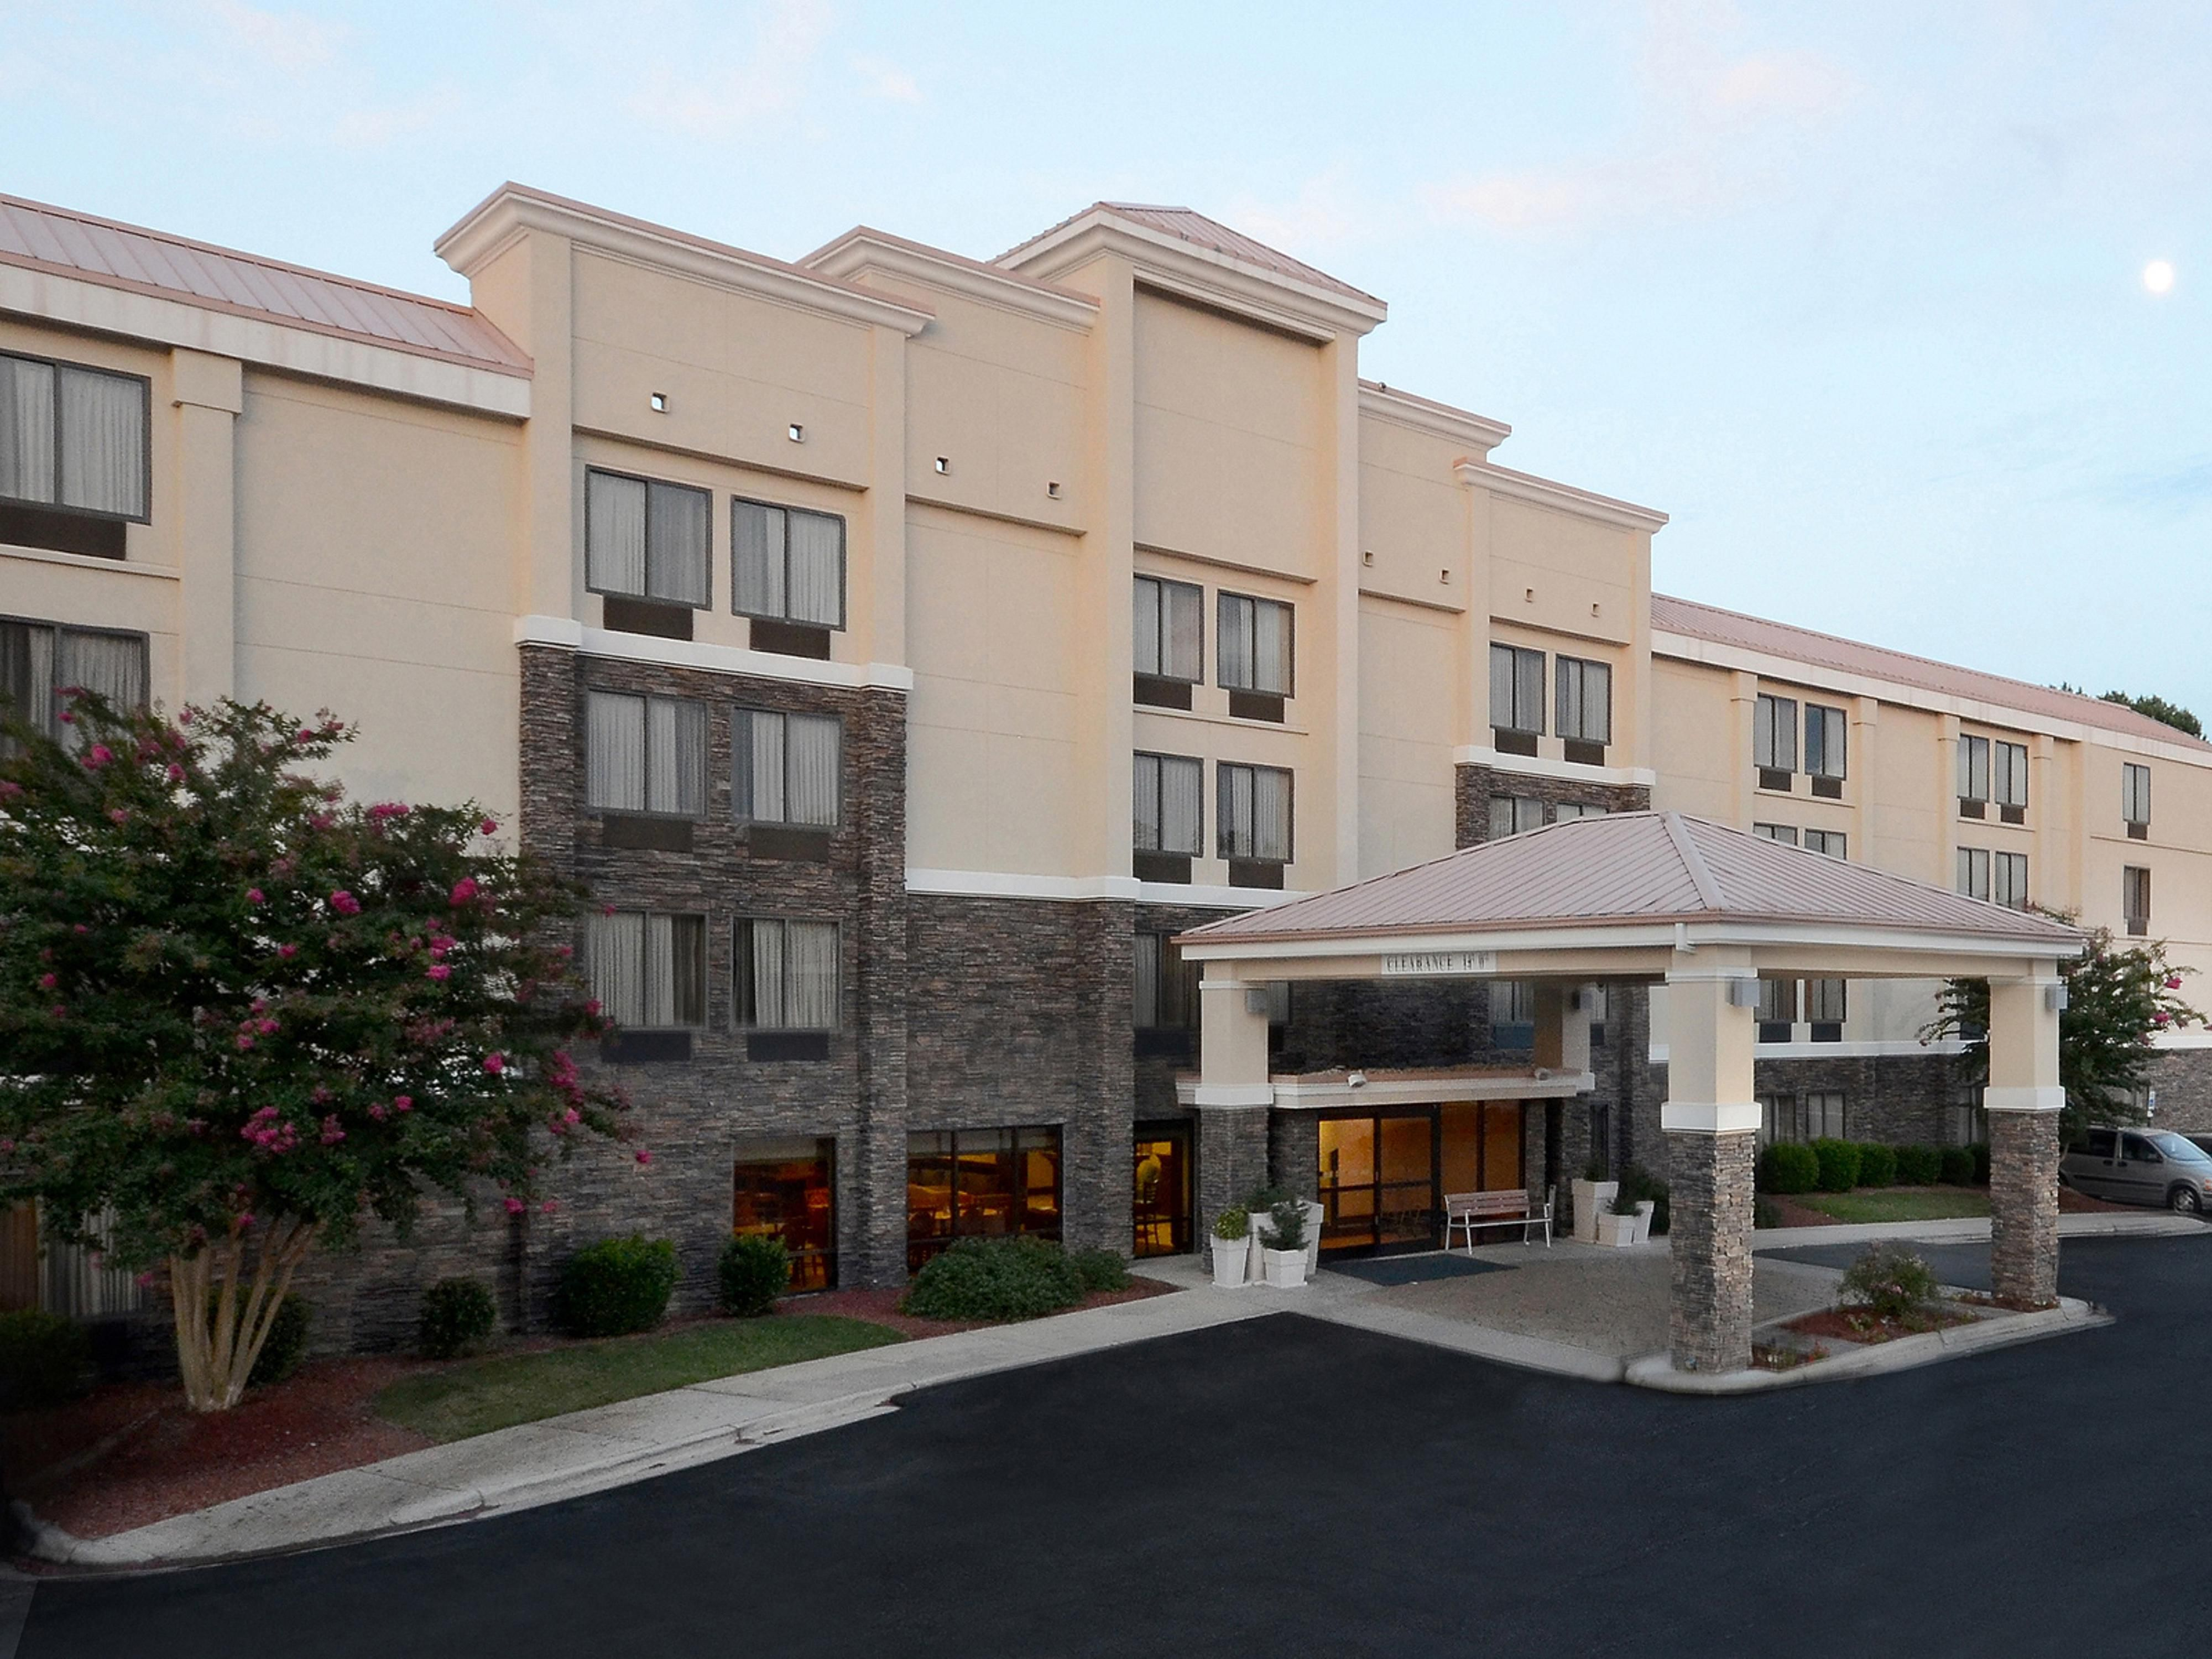 Welcome to the Holiday Inn Express hotel near RDU Airport!